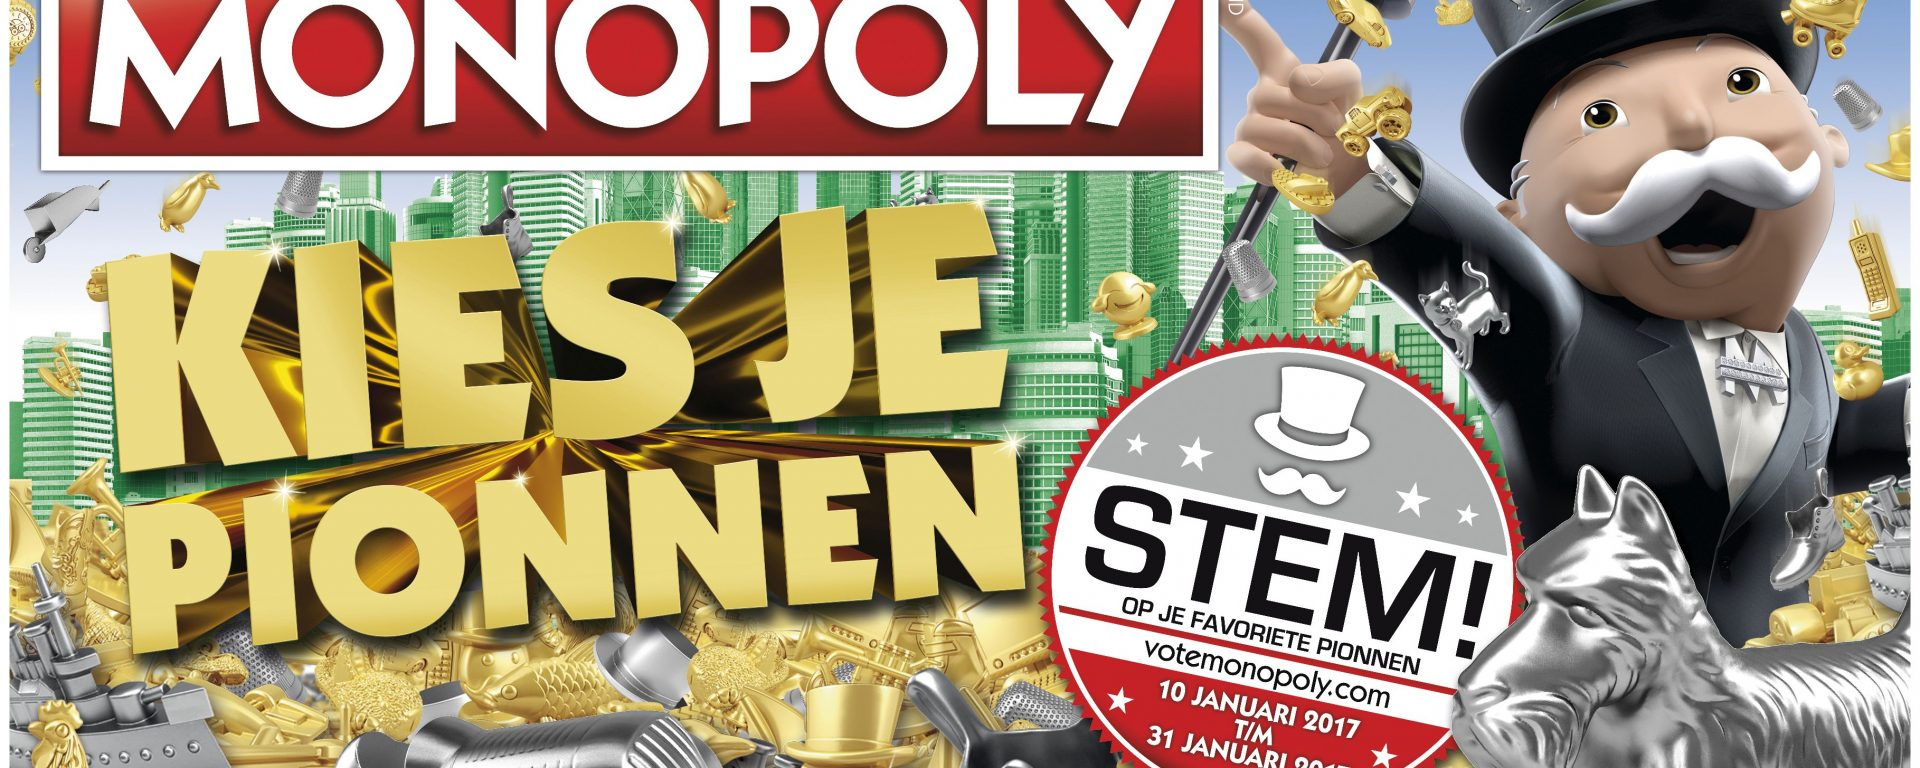 monopoly_tm_header_groot_stem-hlf